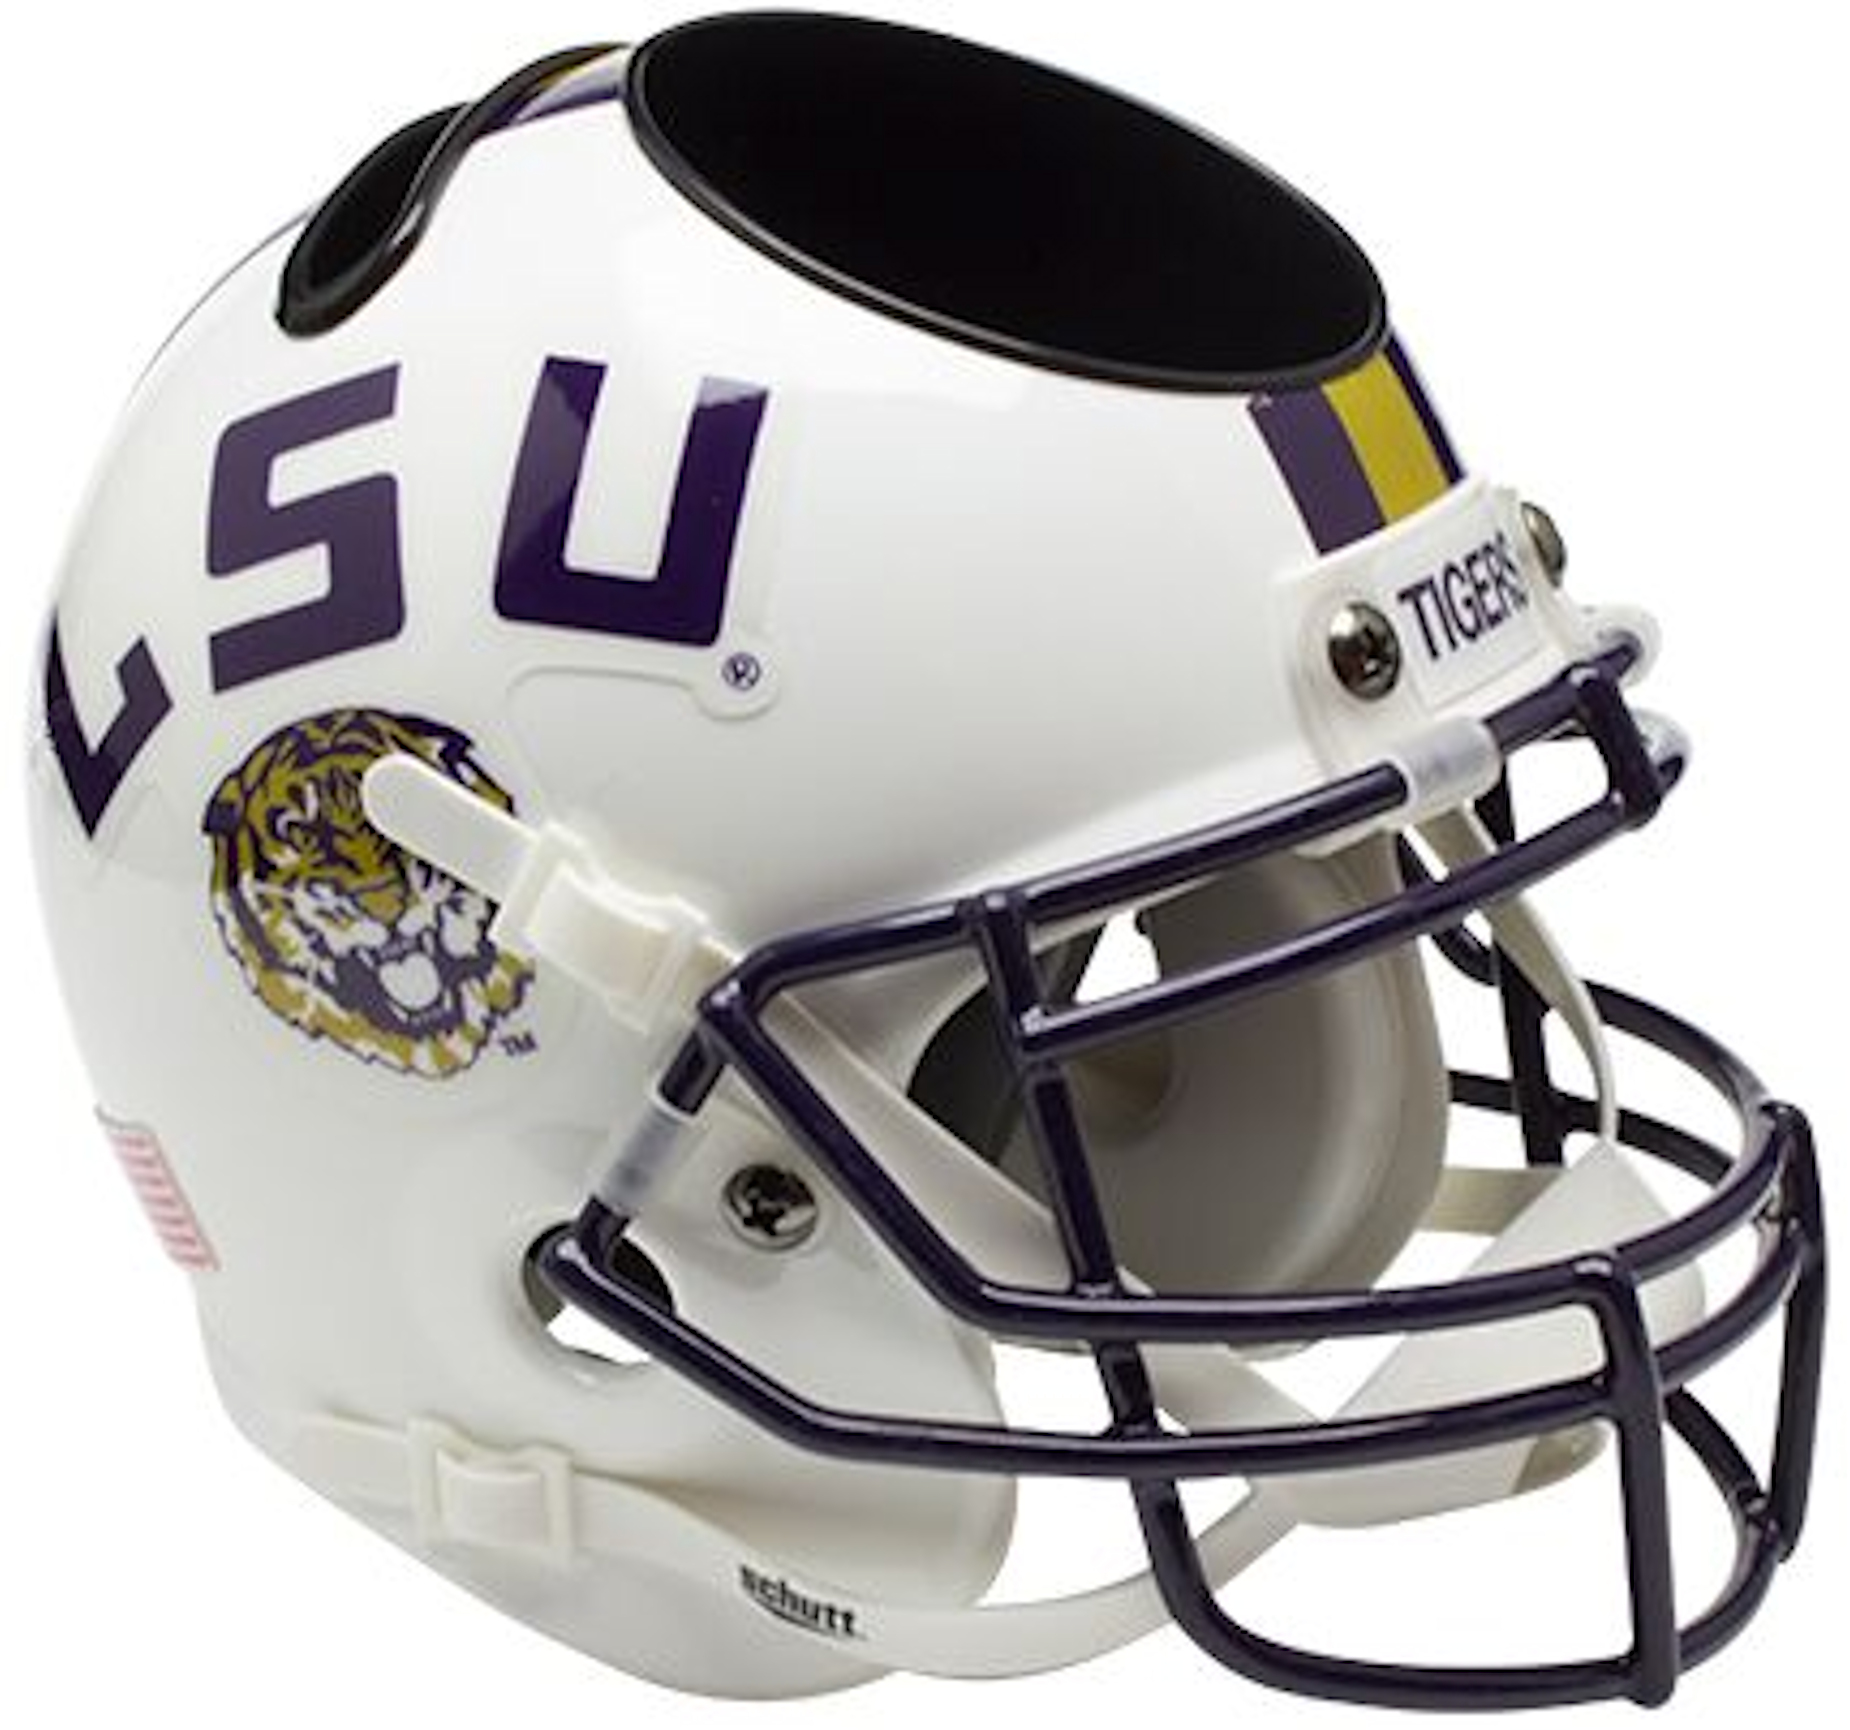 LSU Tigers Miniature Football Helmet Desk Caddy <B>White</B>